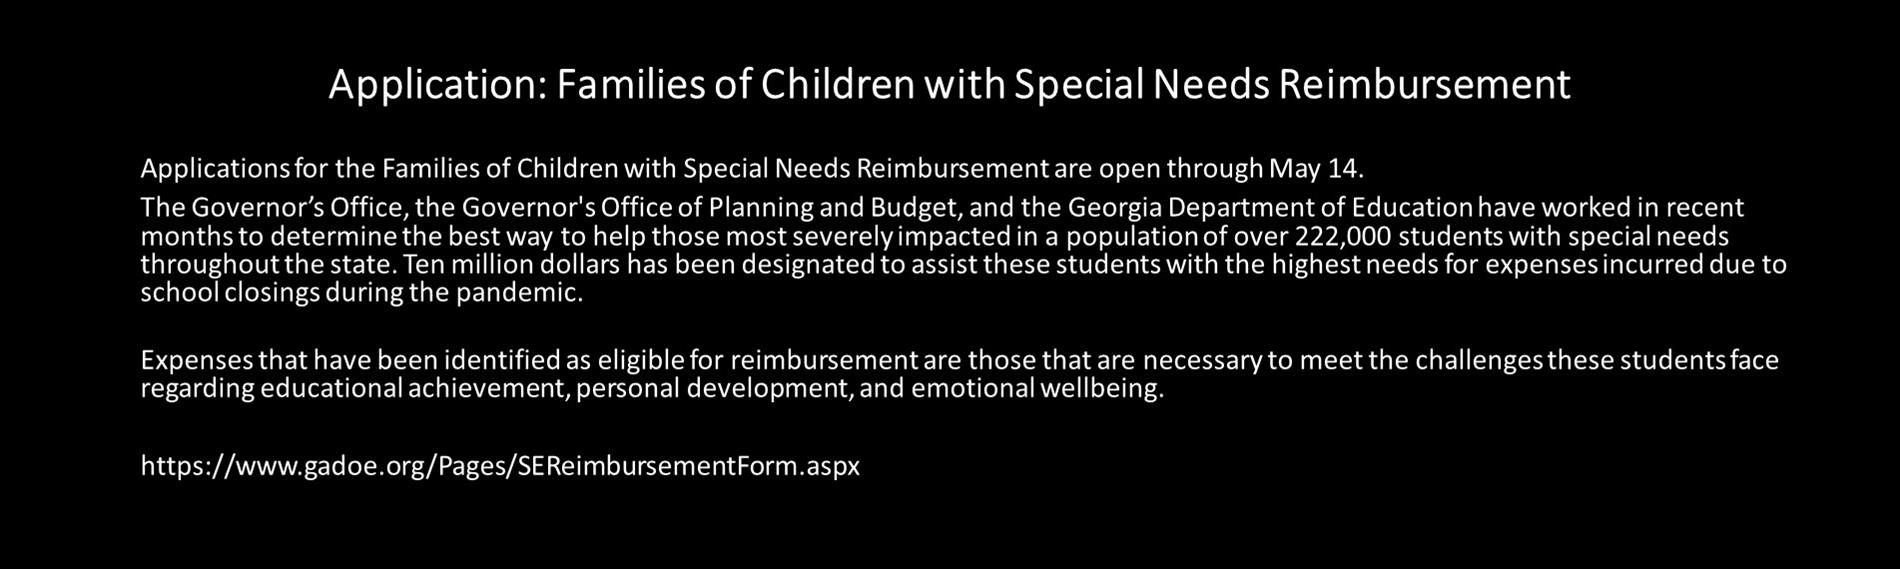 Application: Families of Children with Special Needs Reimbursement